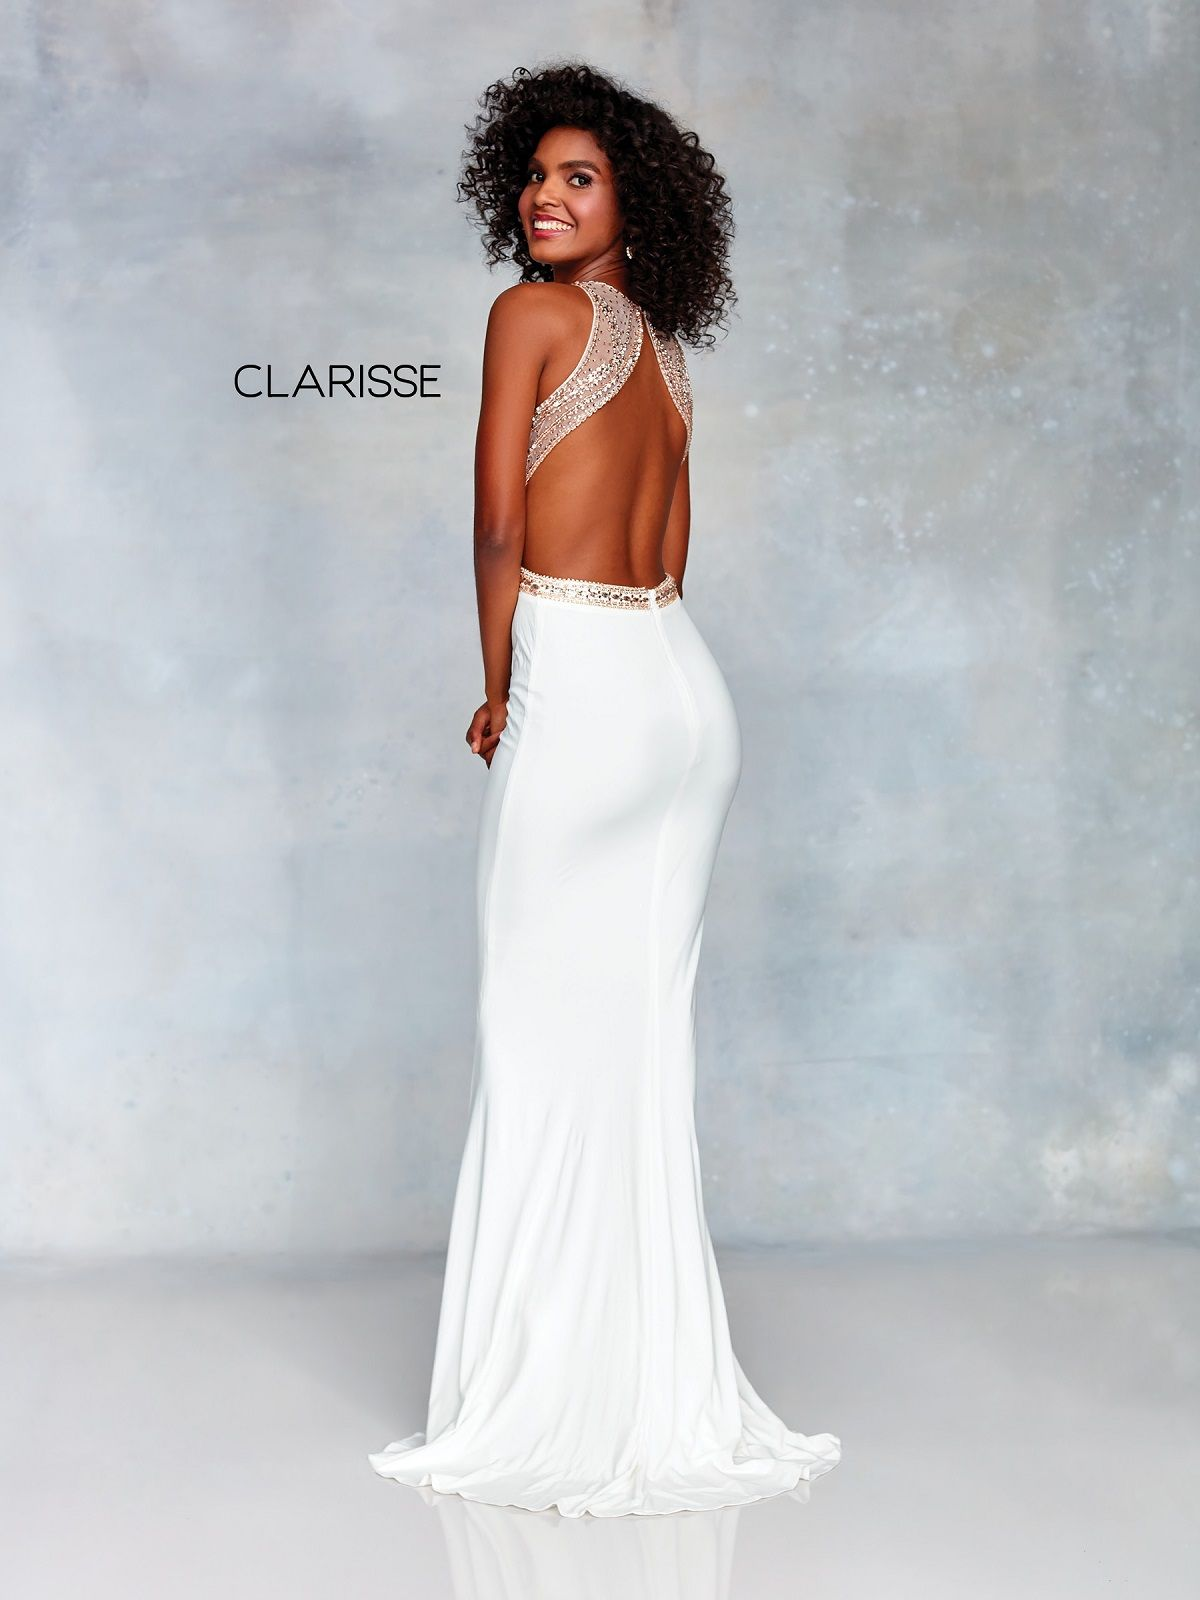 b9c9b562a18 Clarisse Dress 3720 Sexy Sequined Cut Out Fitted Prom Dress